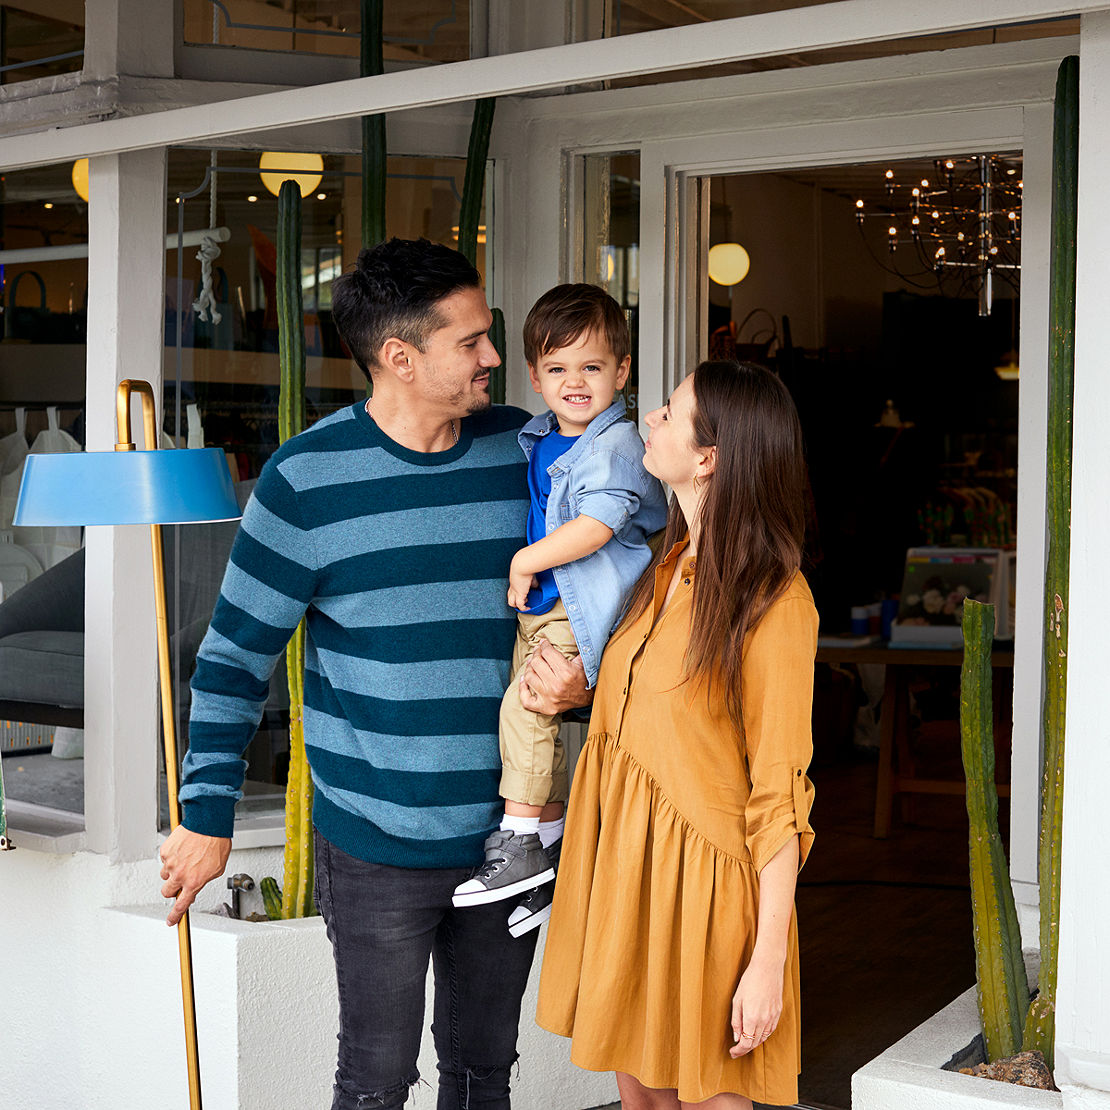 Young couple with their small child outside a shop